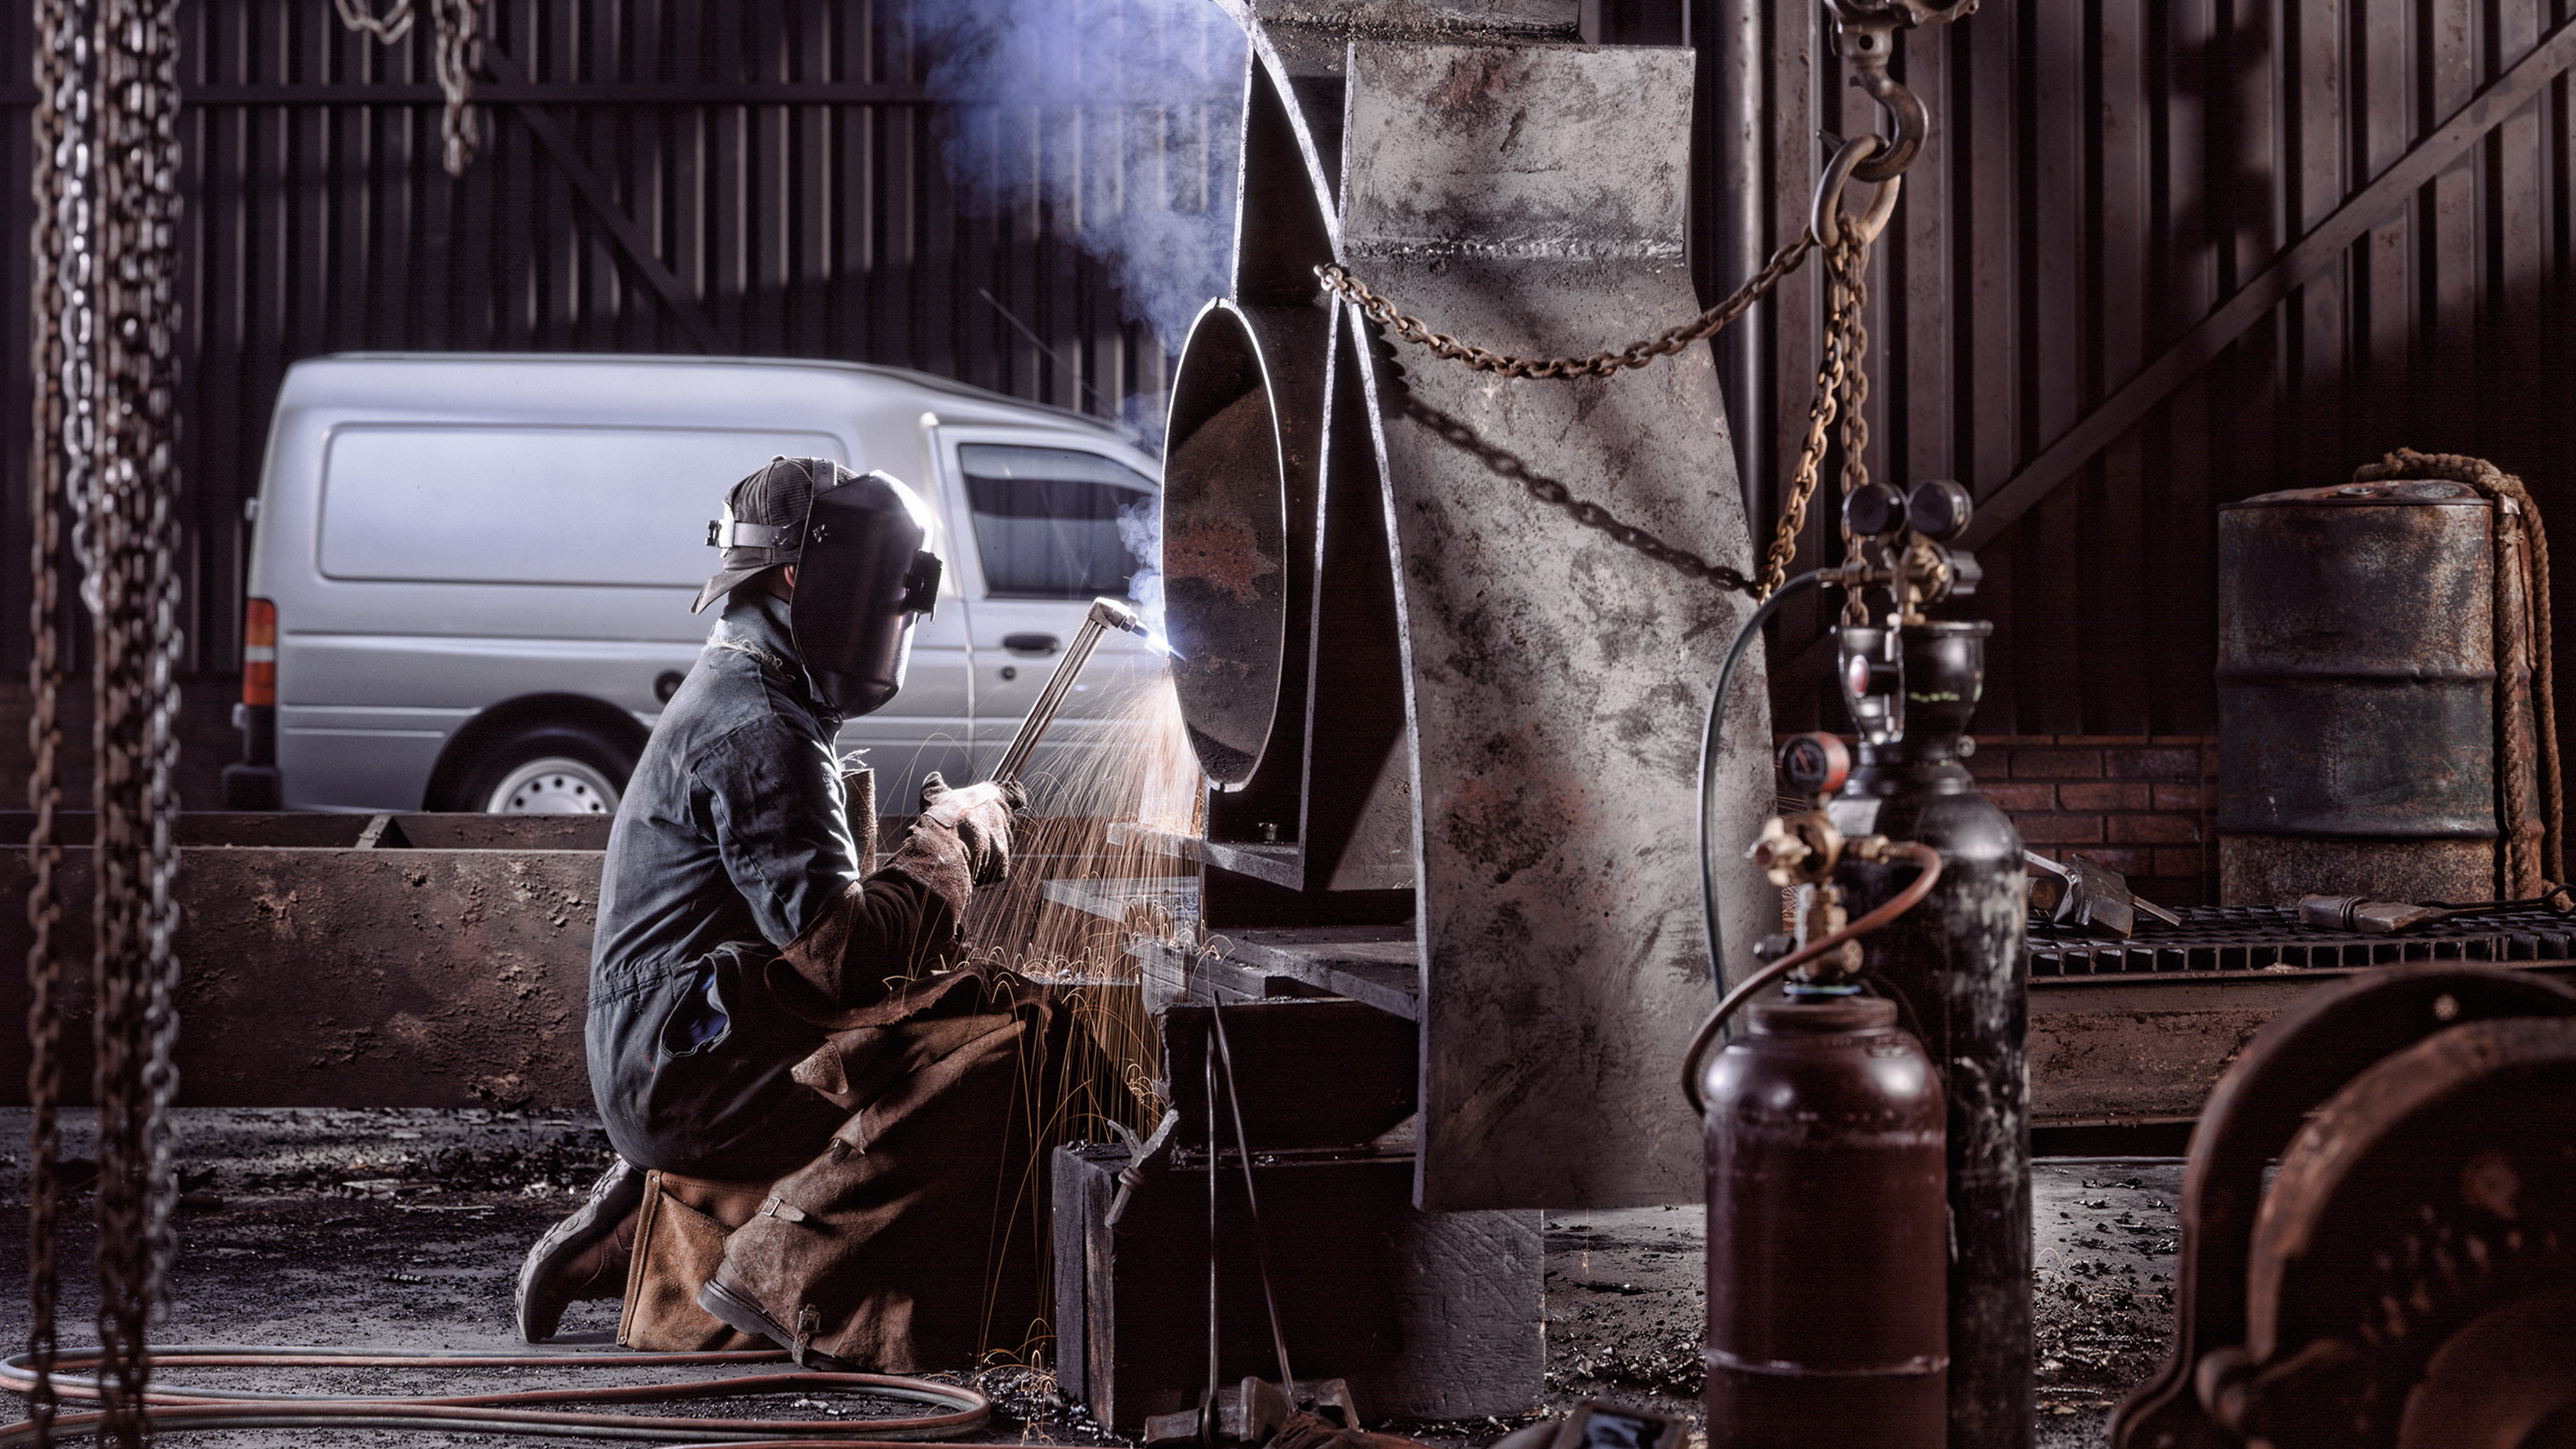 Welder working in an industrial location